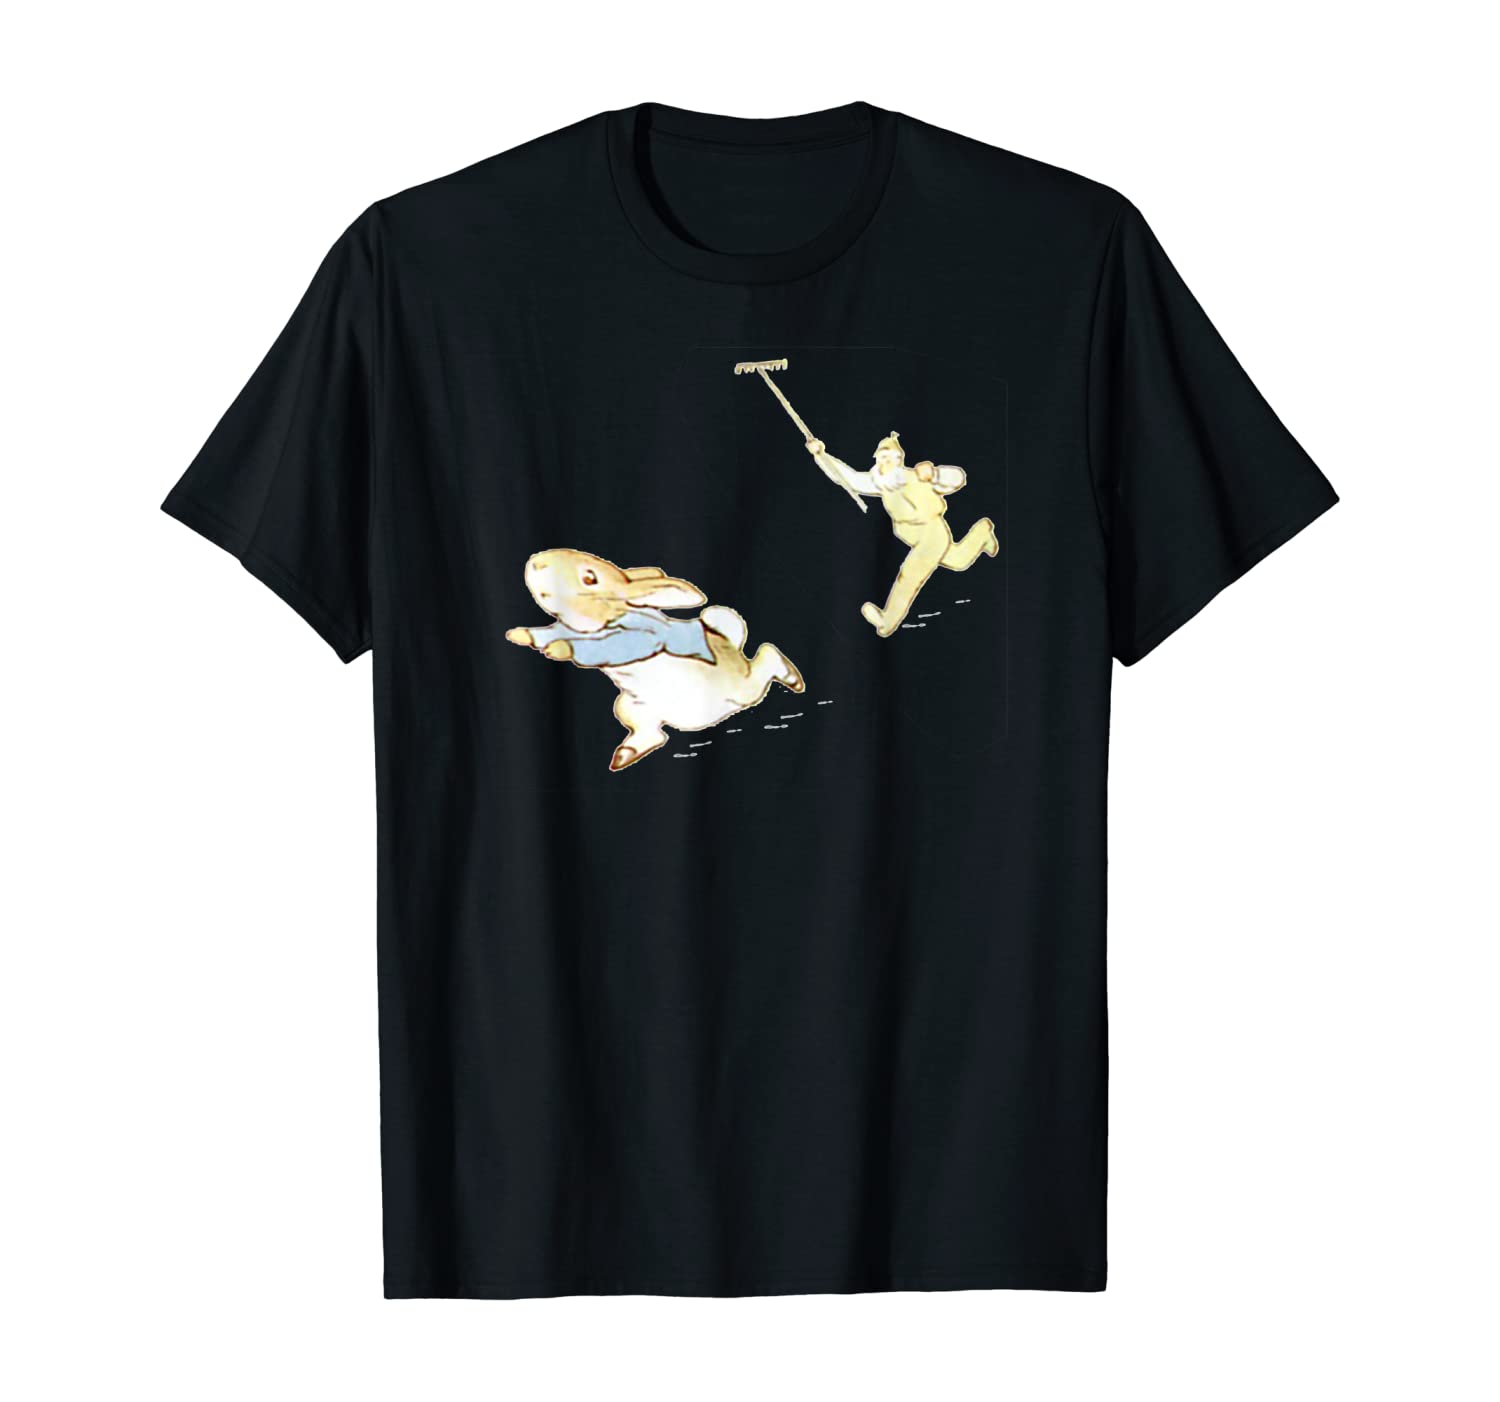 Peter Rabbit Adventure: Chased by Mr. McGregor T-Shirt